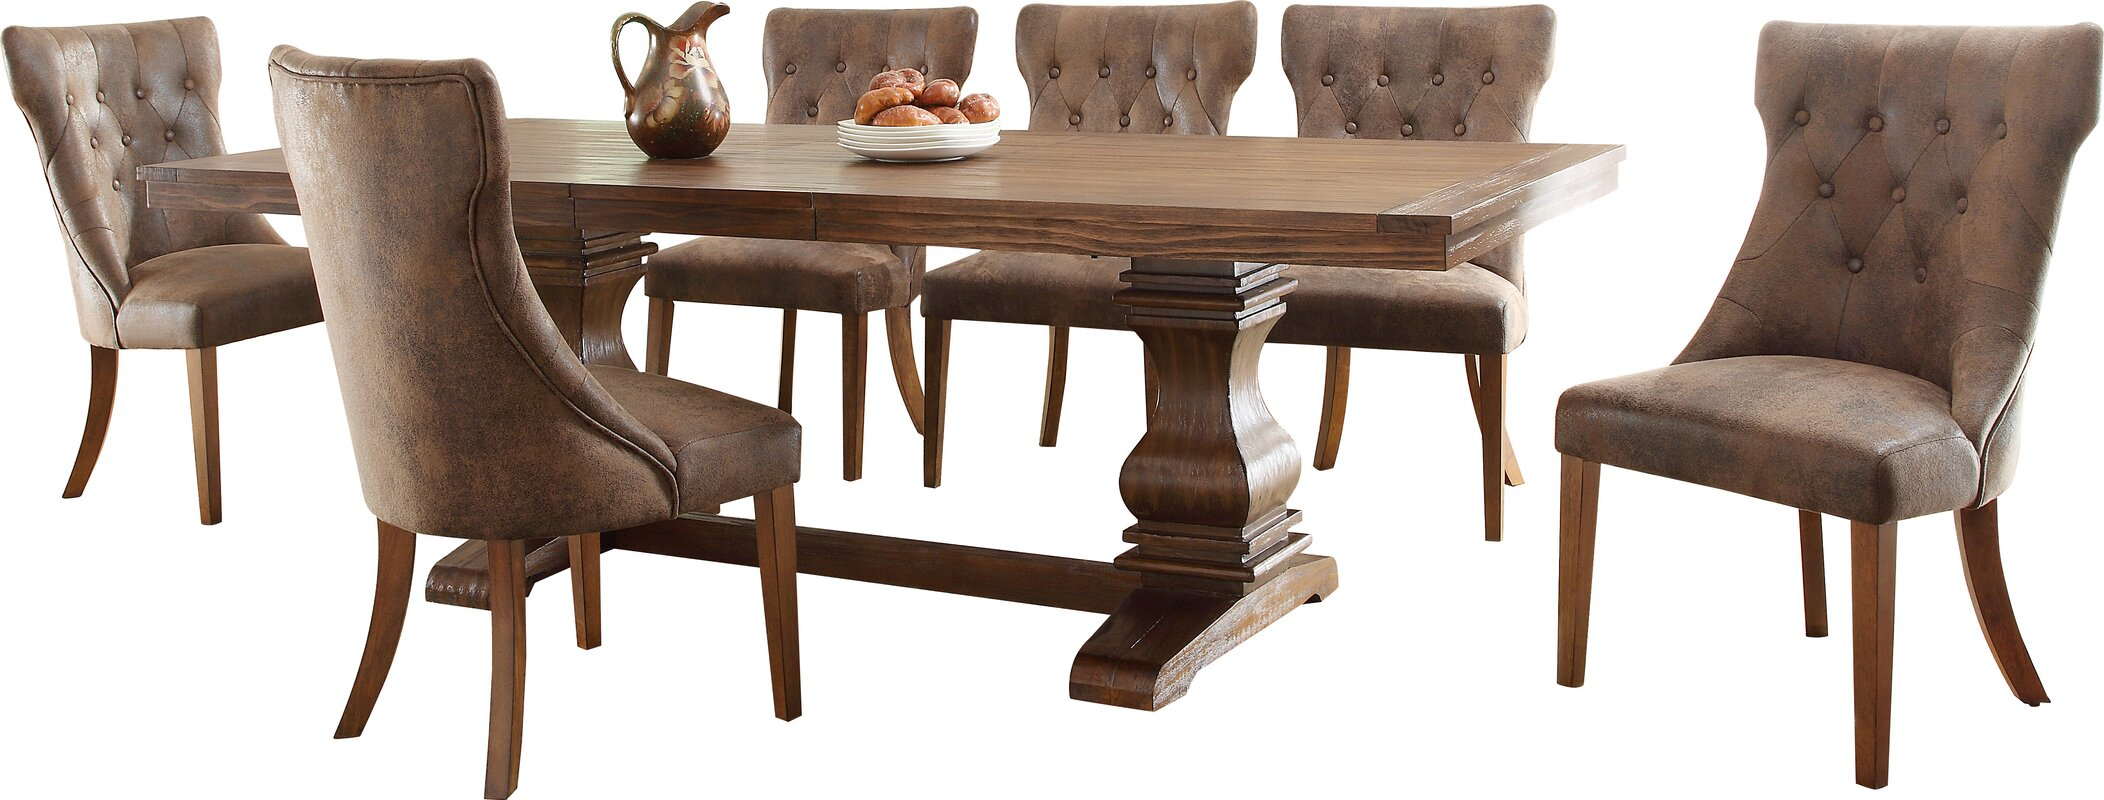 Take A Bite Out Of 24 Modern Dining Rooms: Lark Manor Parfondeval Extendable Wood Dining Table